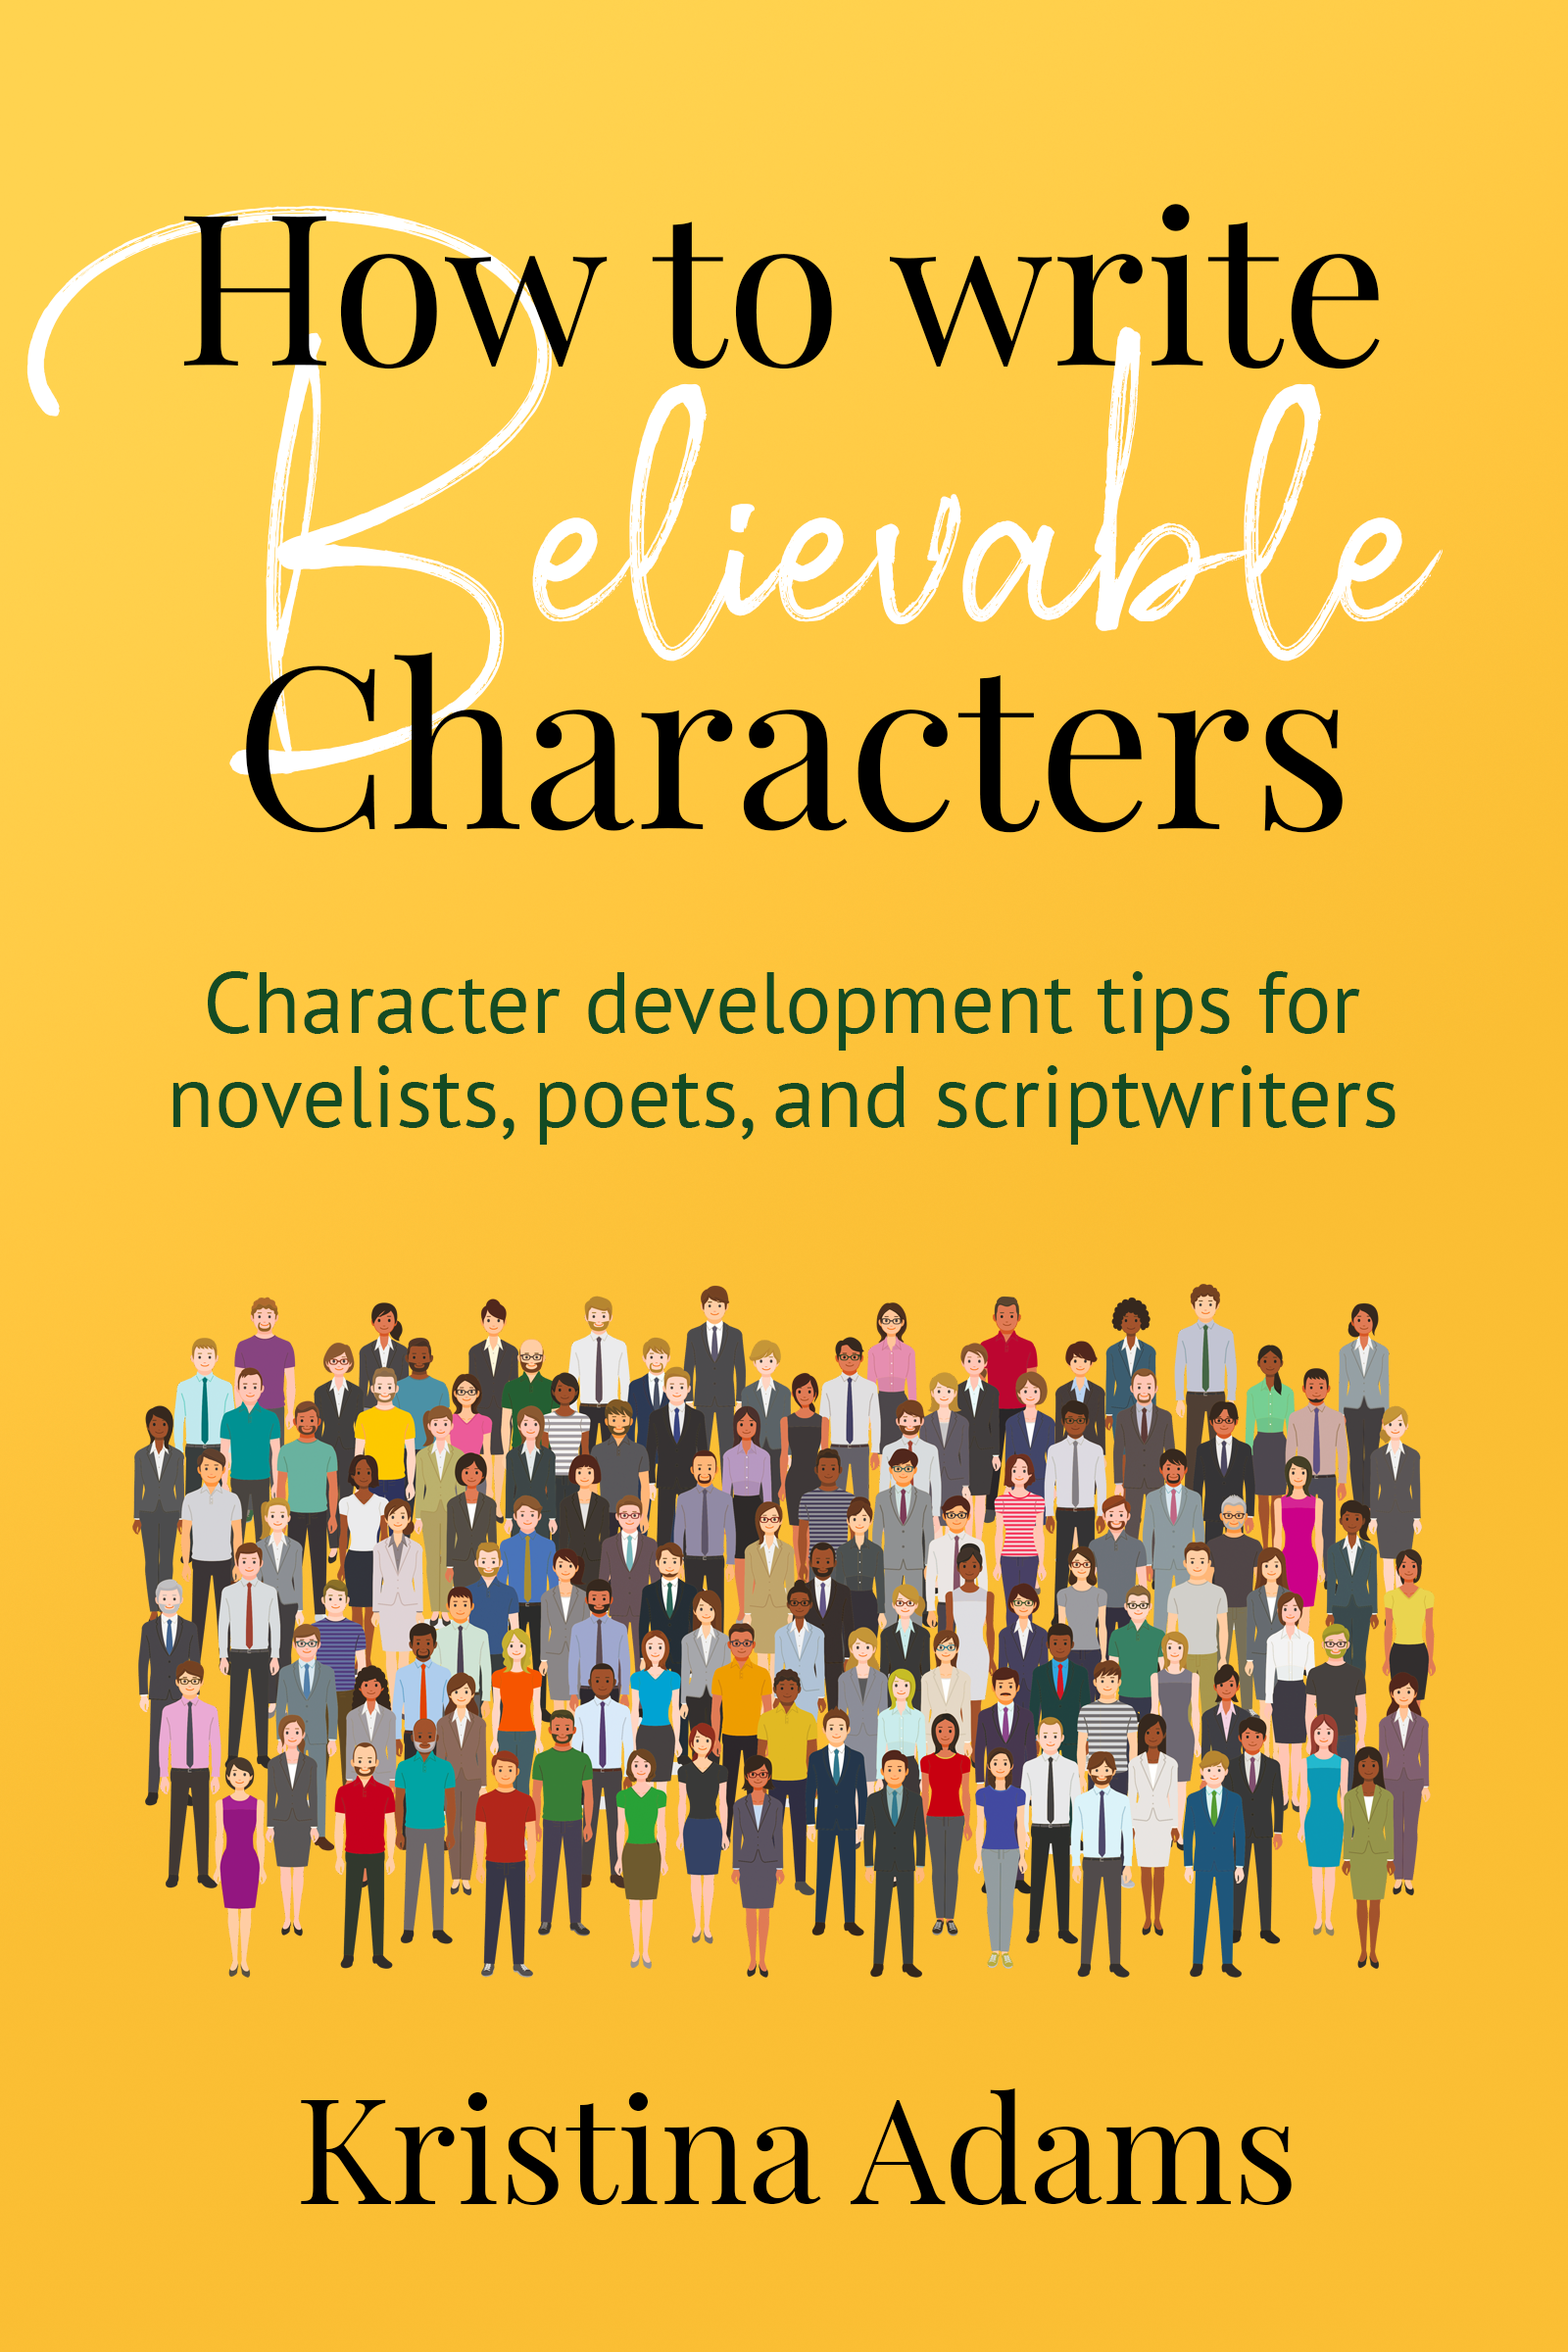 How to write believable characters cover